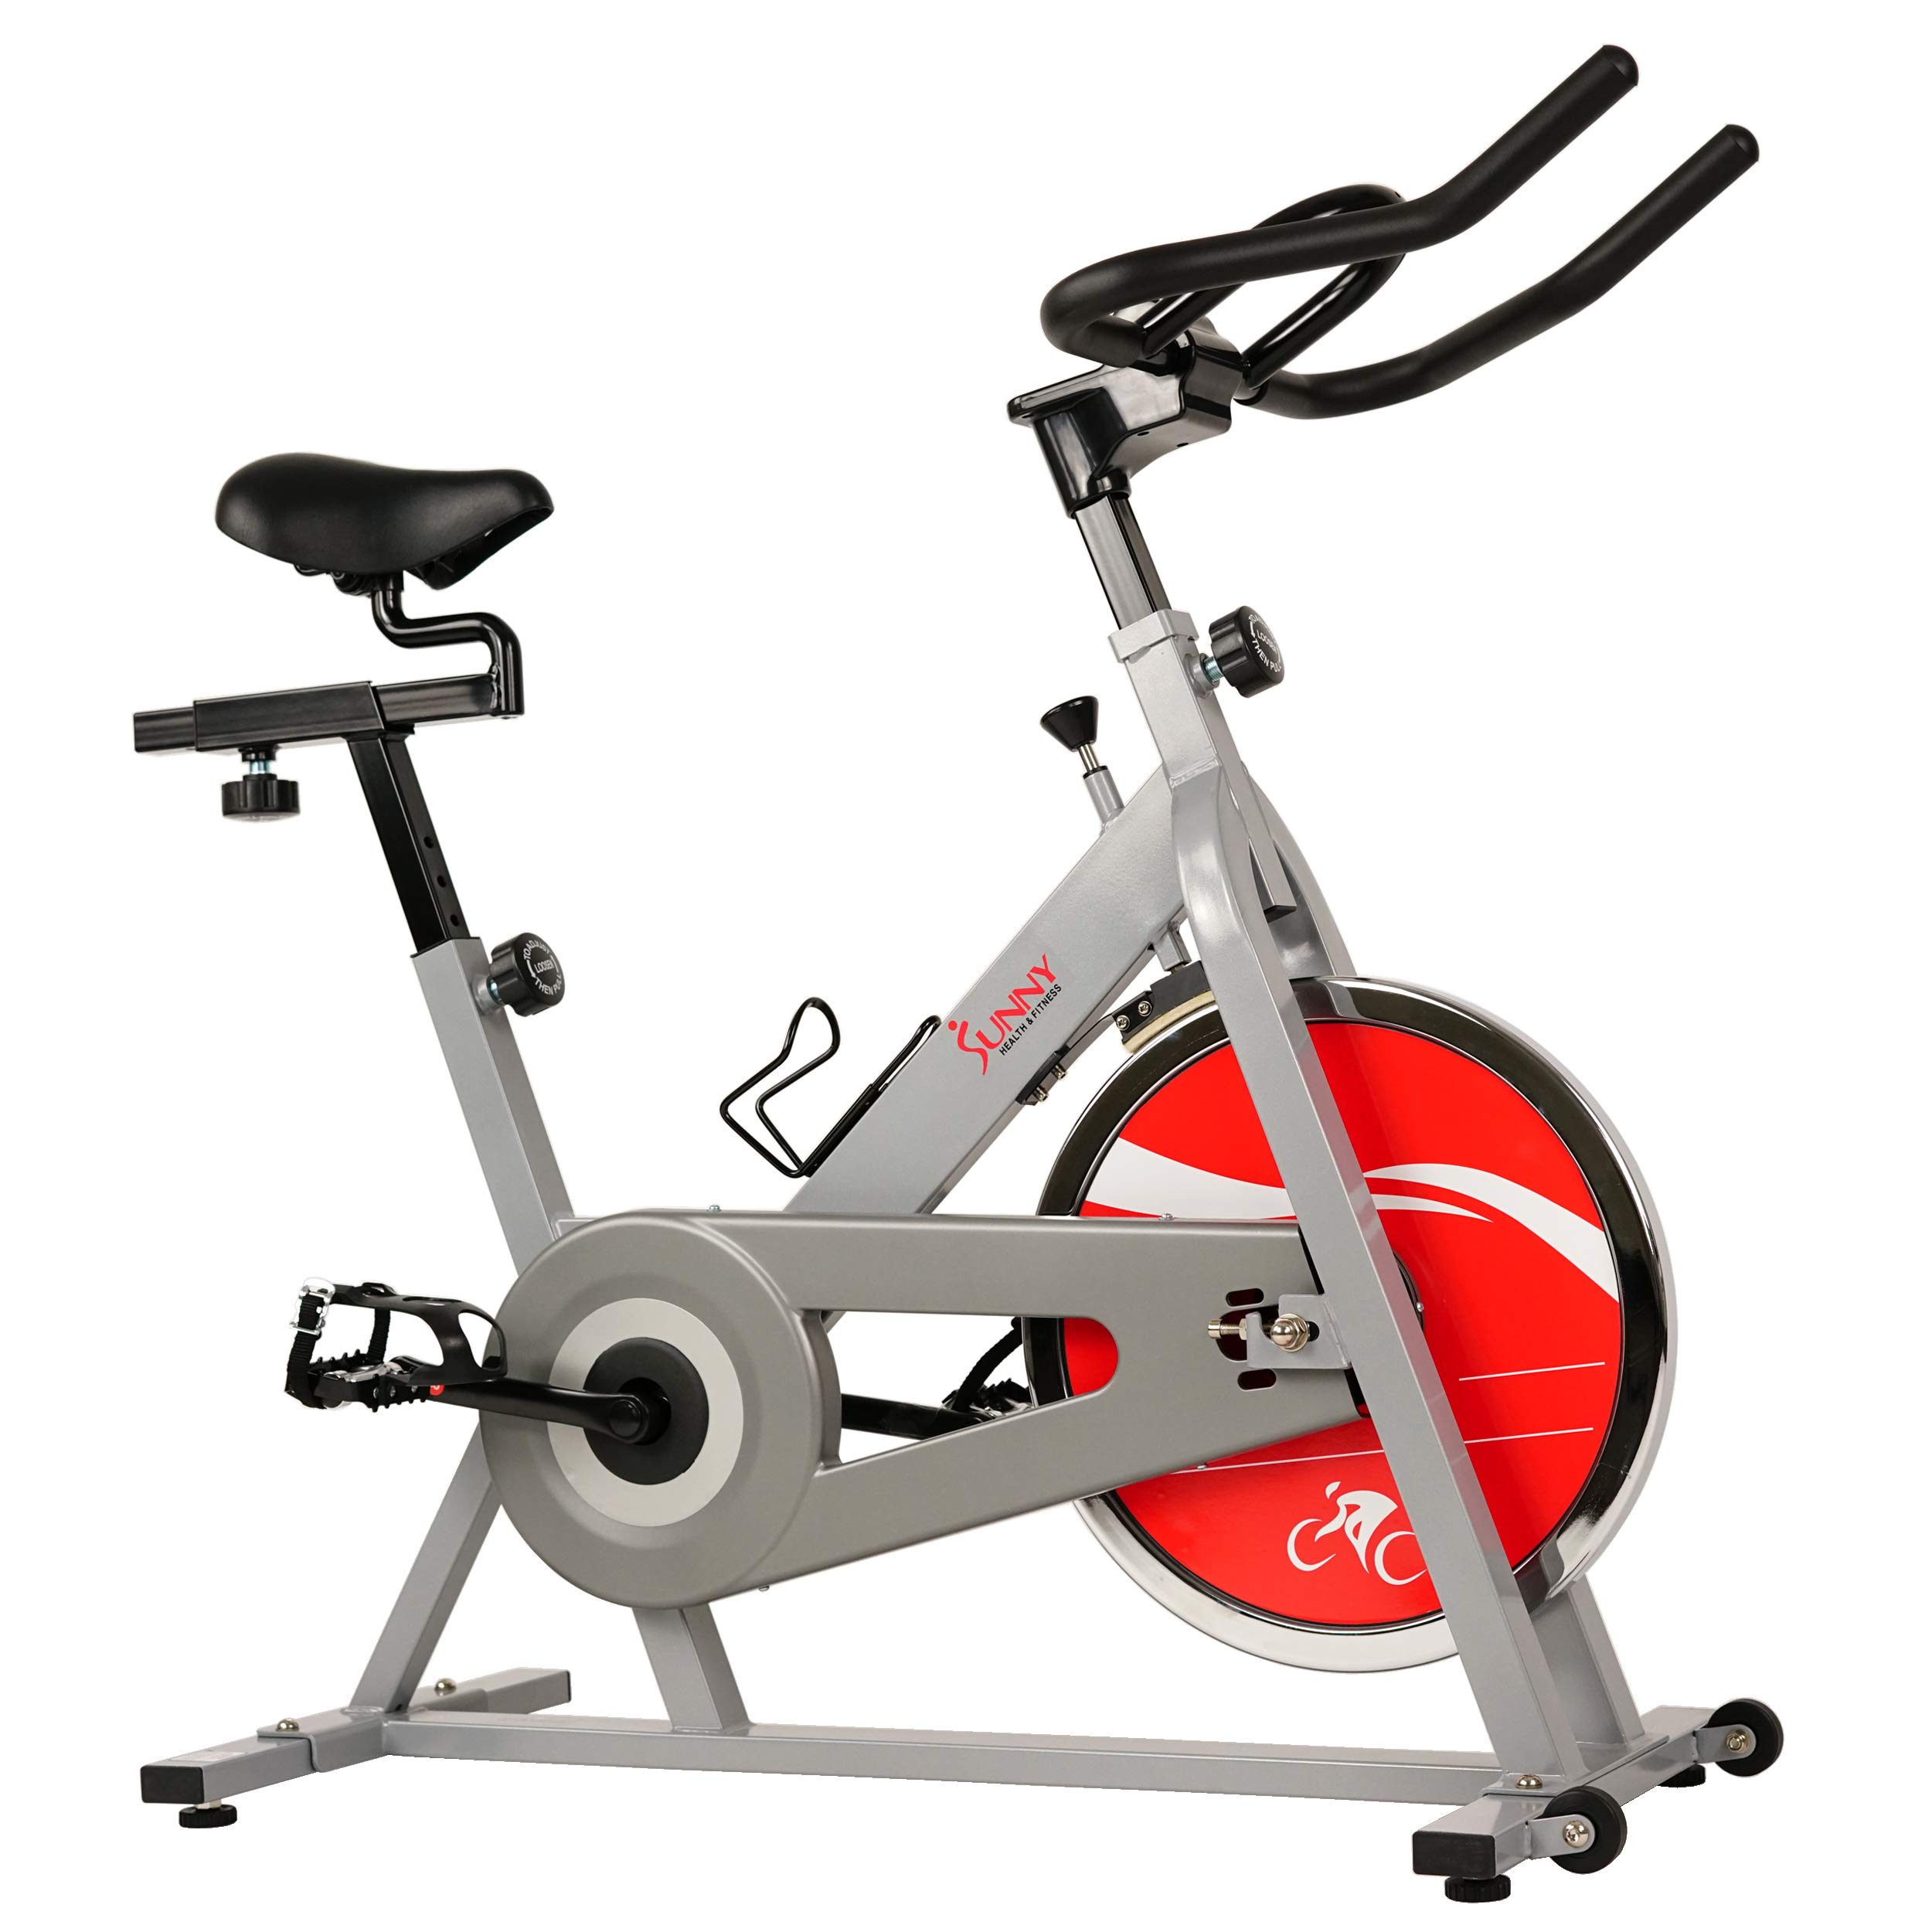 Sunny Health & Fitness SF-B1001S Indoor Cycling Bike, Silver by Sunny Health & Fitness (Image #2)